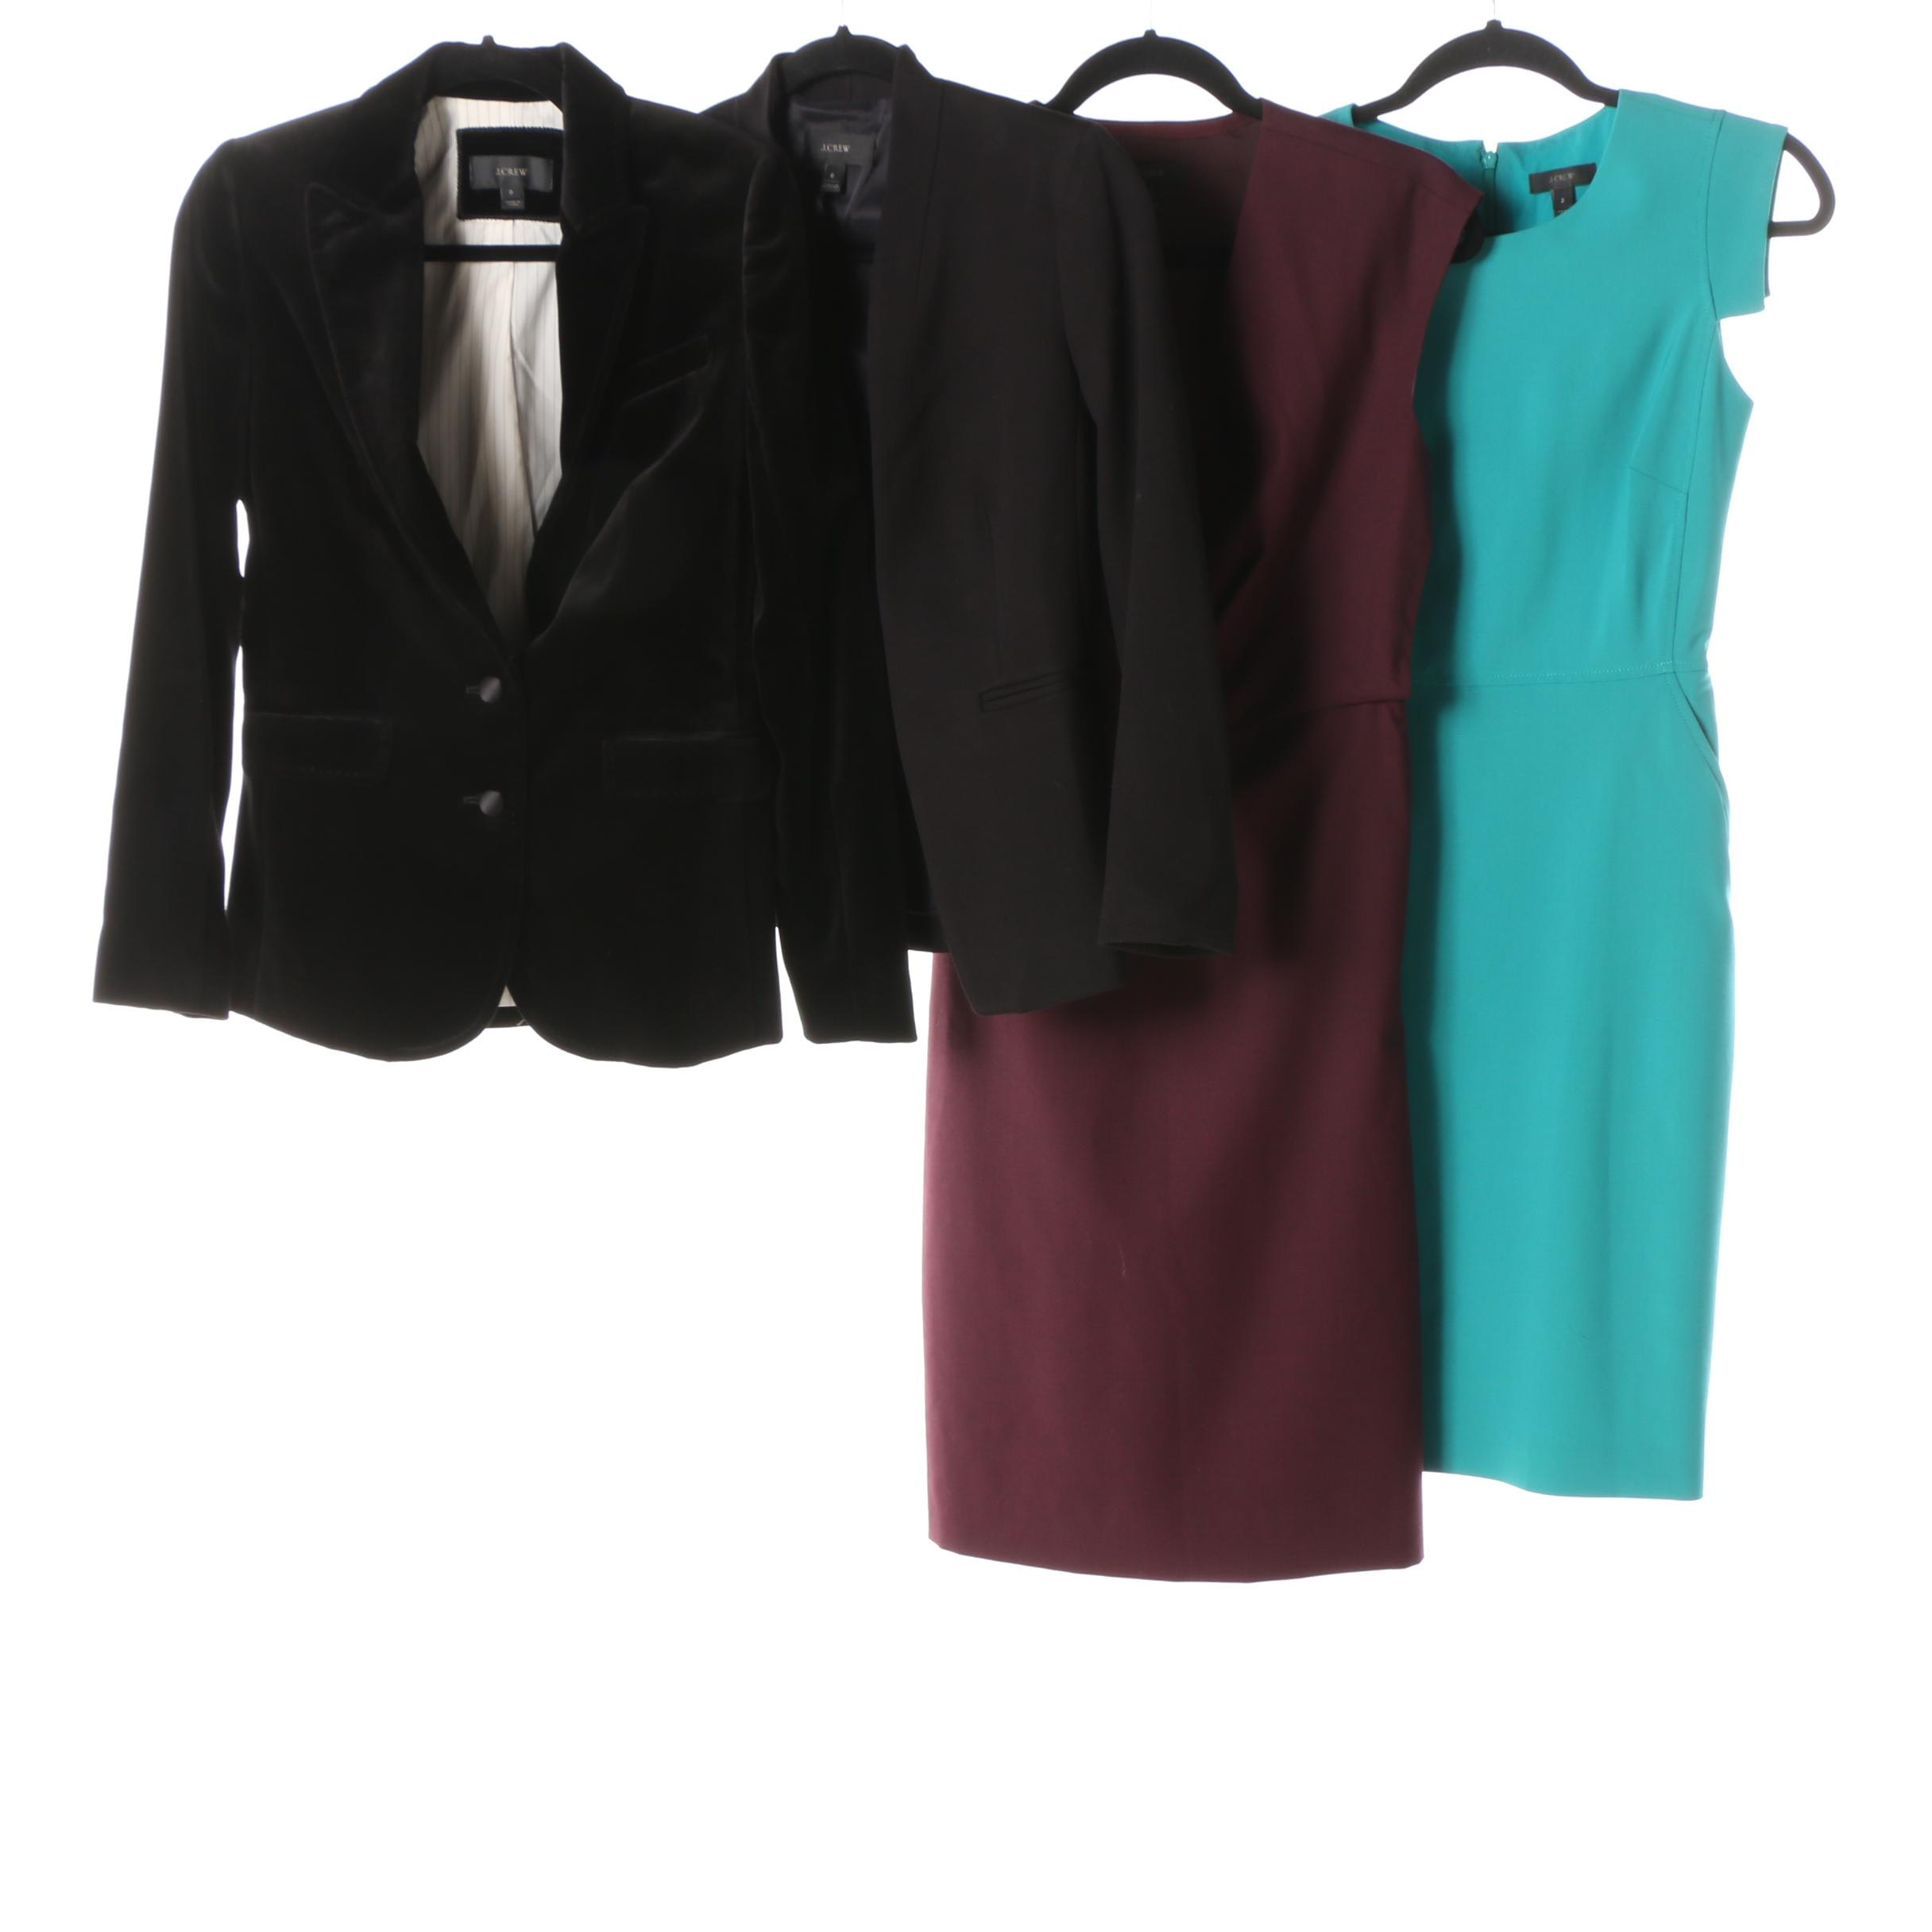 Women's J. Crew Burgundy and Turquoise Sheath Dresses and Black Blazers